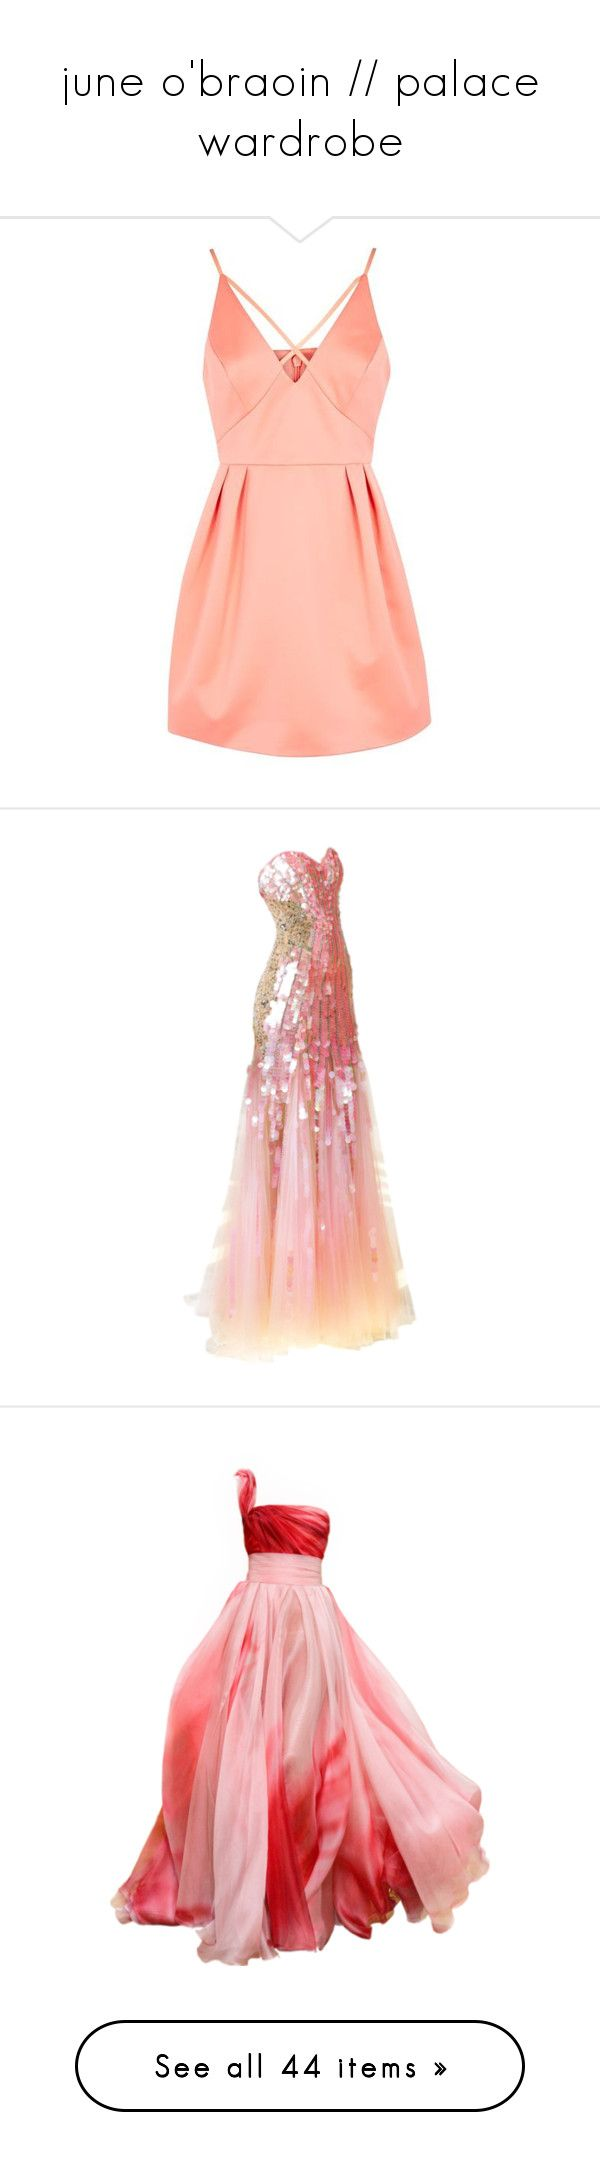 """""""june o'braoin // palace wardrobe"""" by slightlyterrified ❤ liked on Polyvore featuring dresses, vestidos, formal cocktail dresses, party dresses, petite prom dresses, red party dresses, red prom dresses, gowns, edited and long dress"""